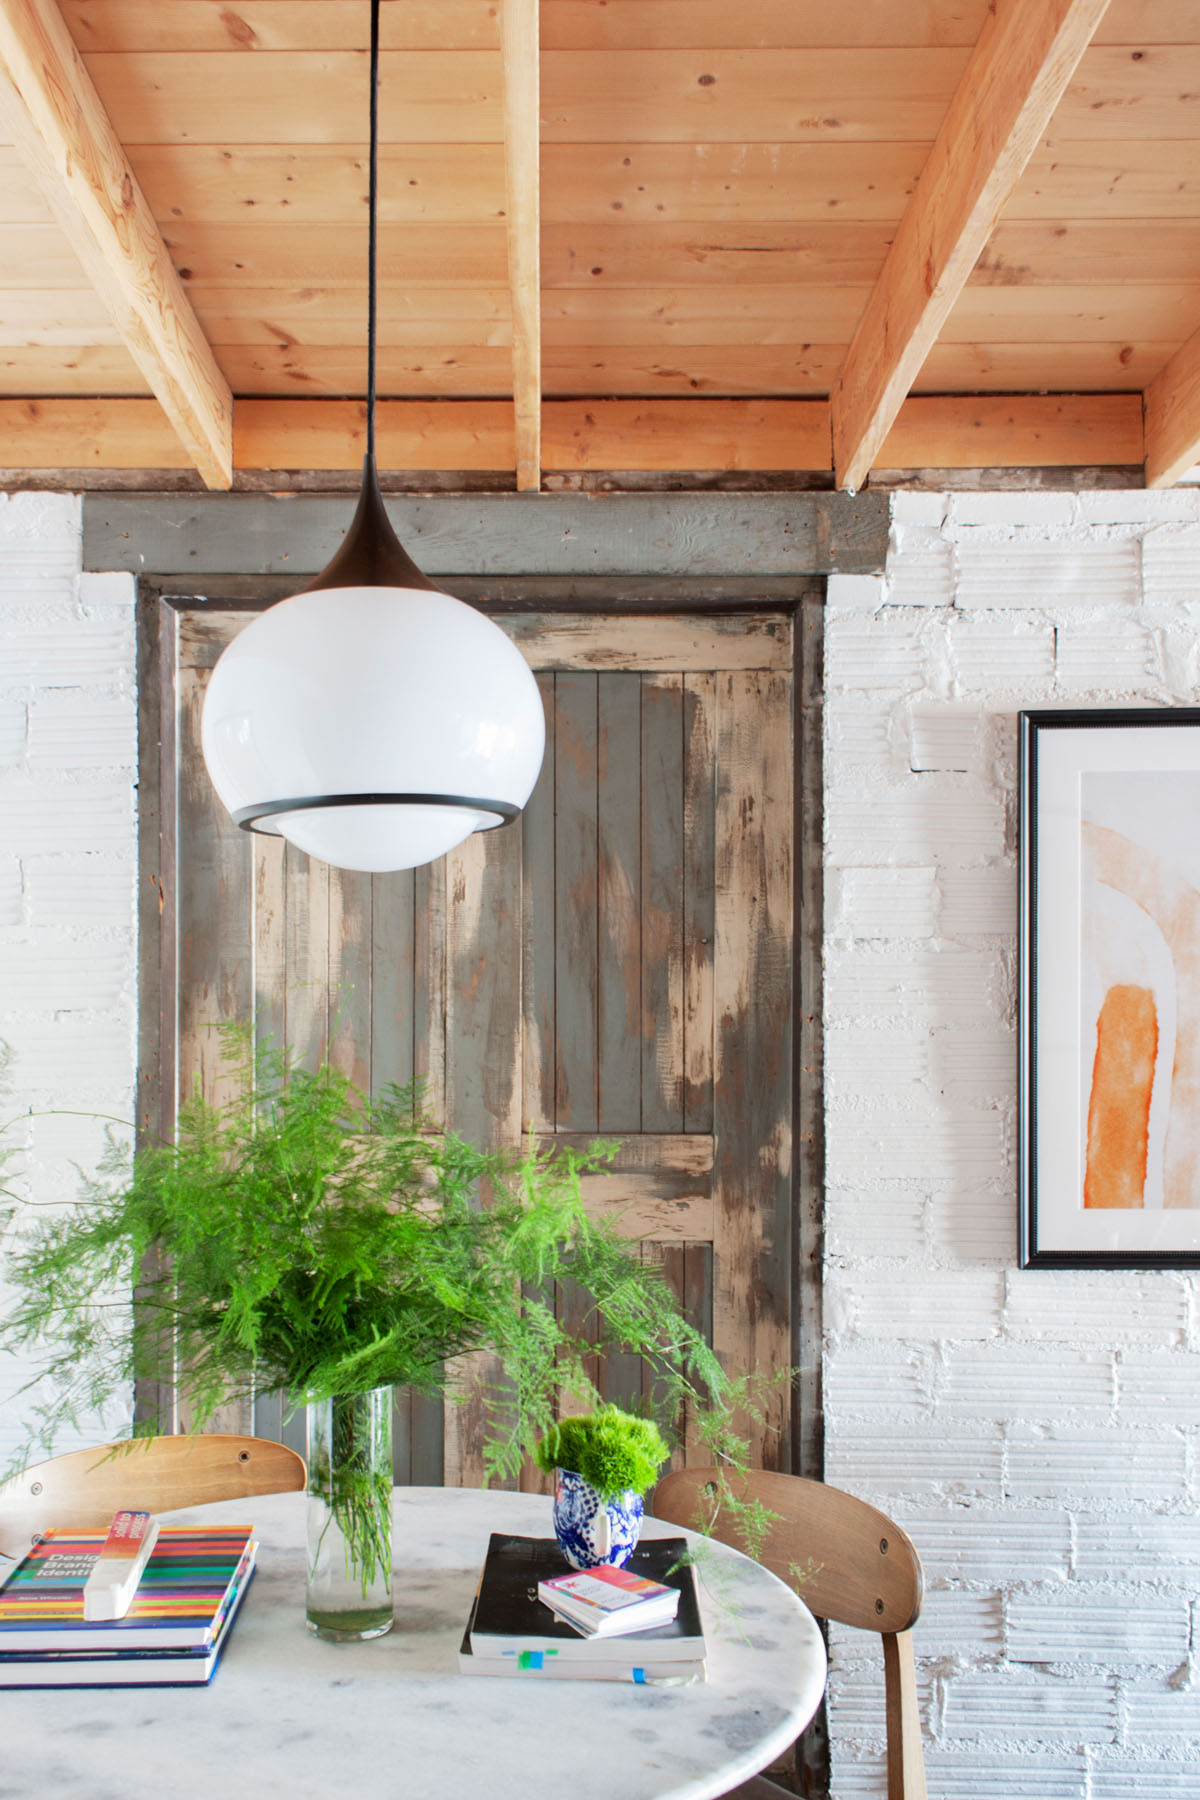 Hoot-Scout-And-Nimble-Edgy-Eclectic-Warm-Tones-Office42.jpg